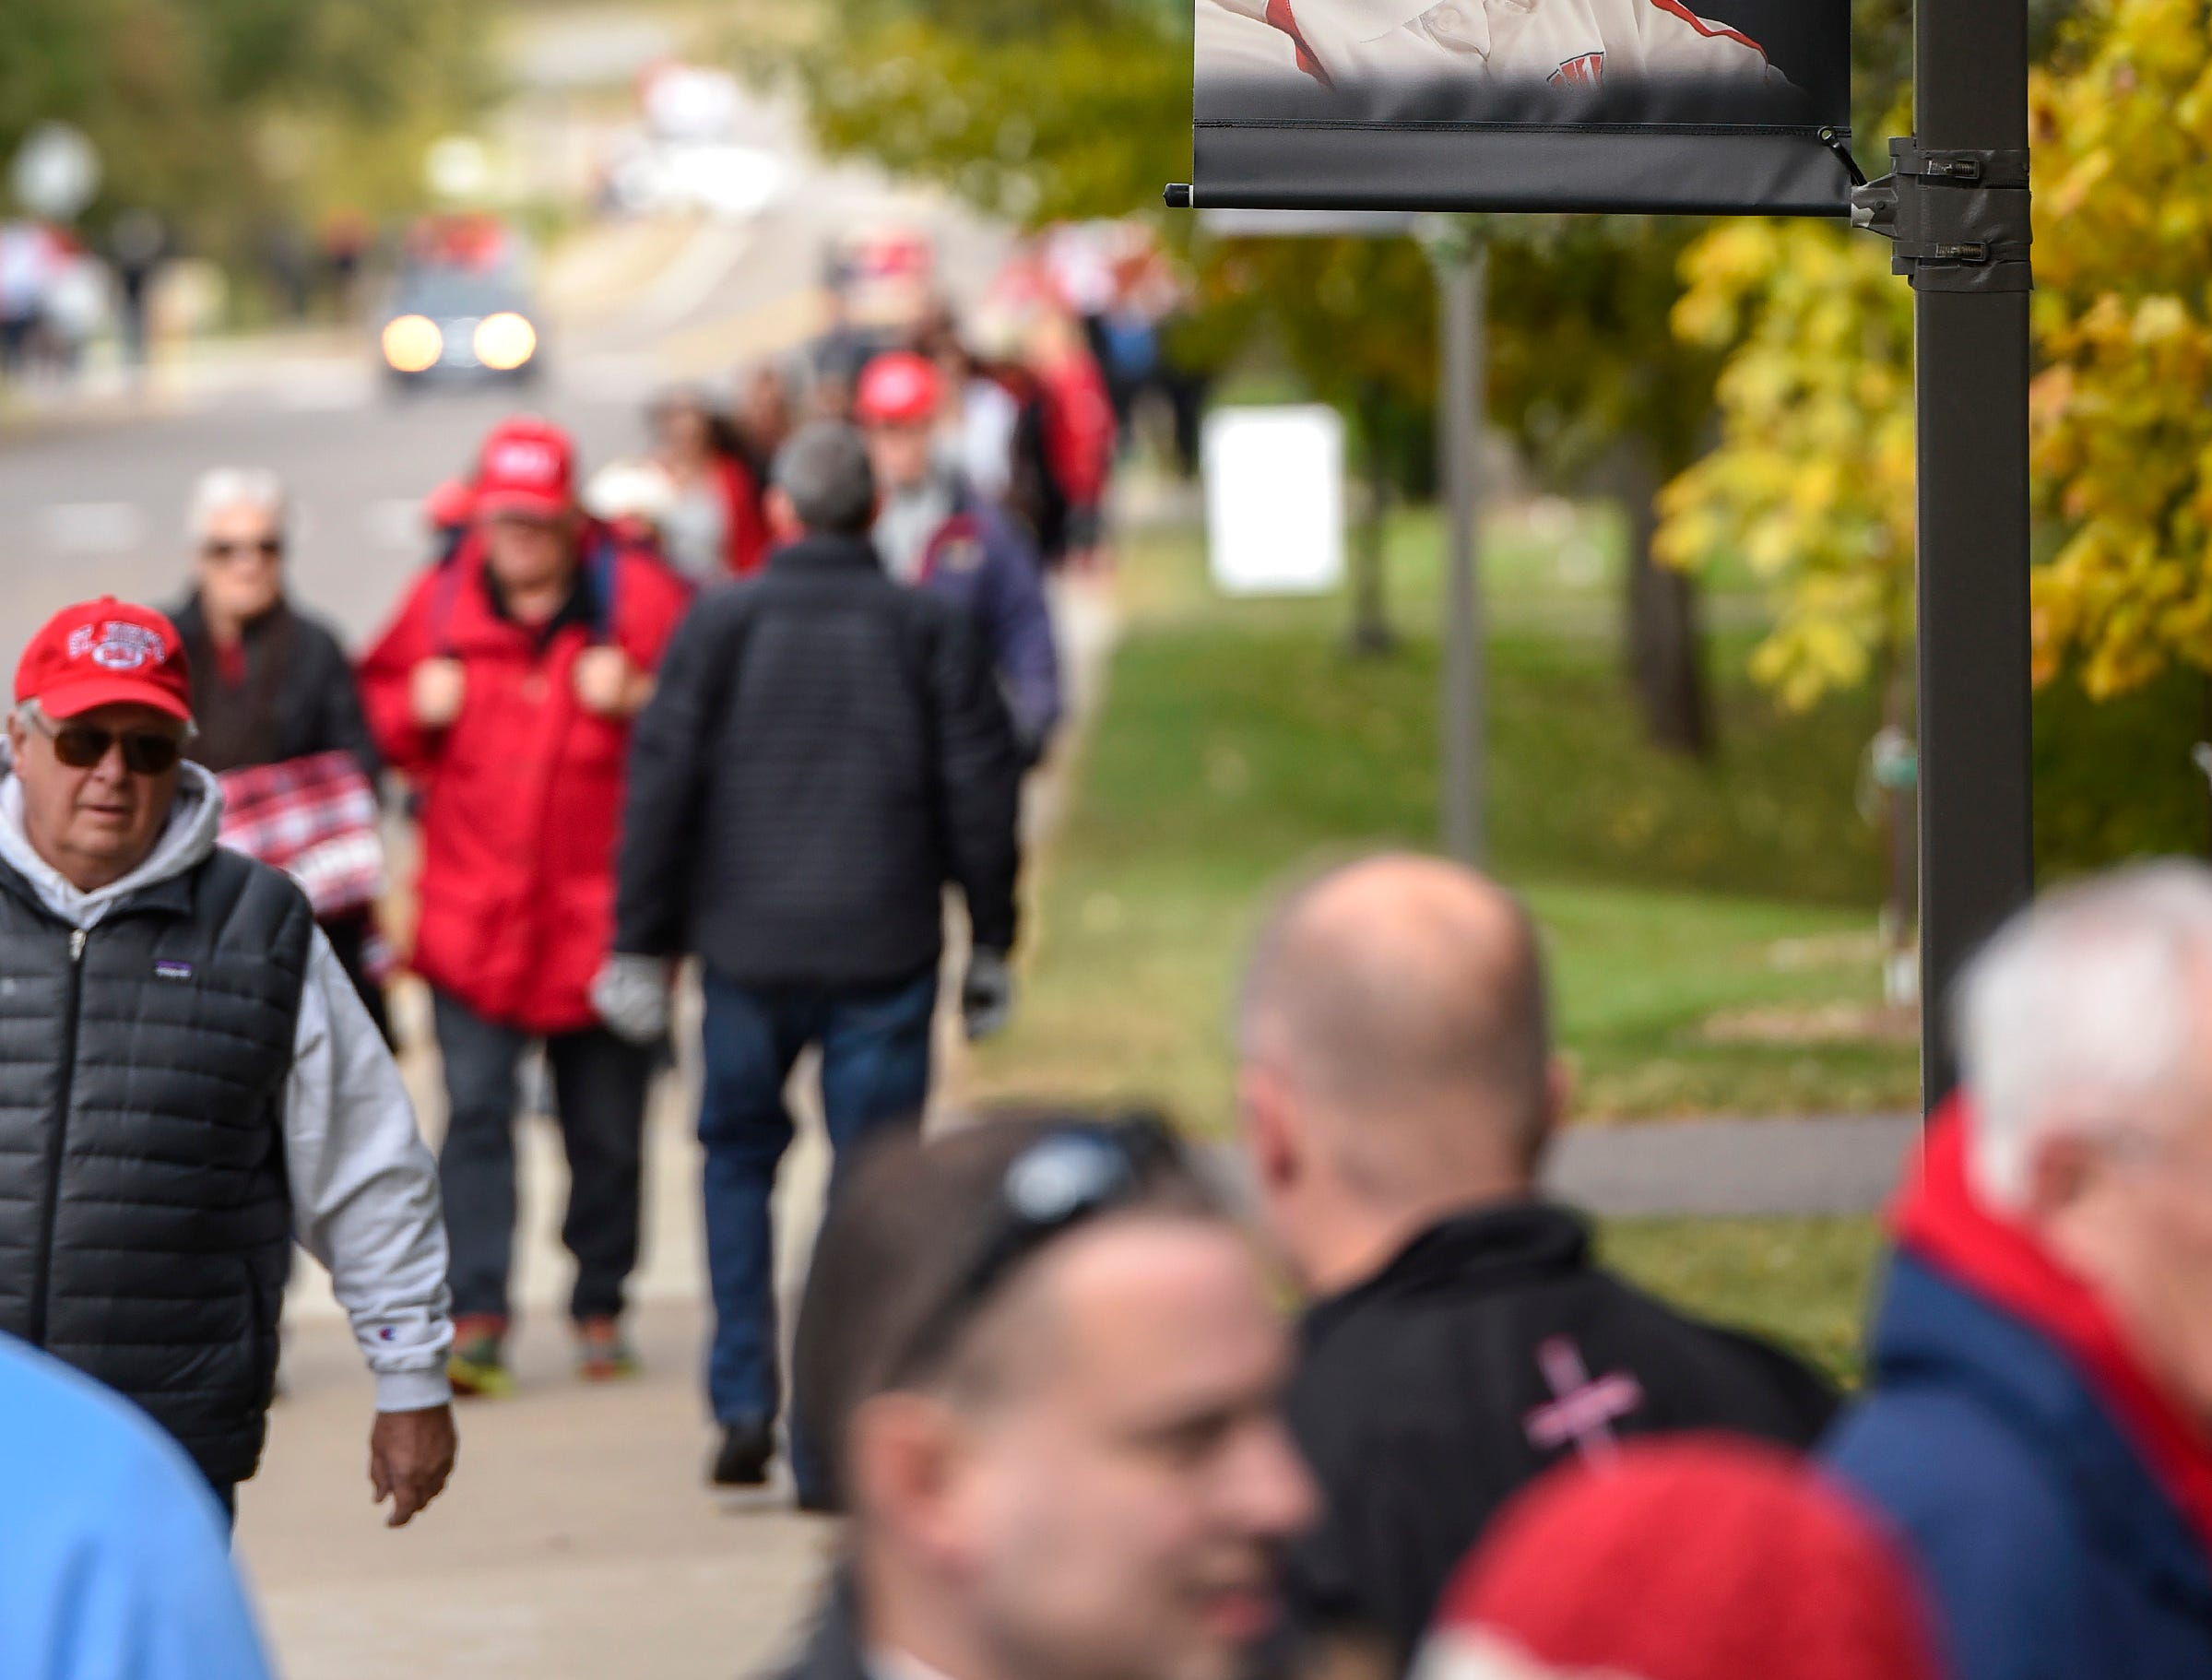 Banners in memory of John Gagliardi hang on light poles around Clemens Statium as fans enter the football game Saturday, Oct. 13, in Collegeville.